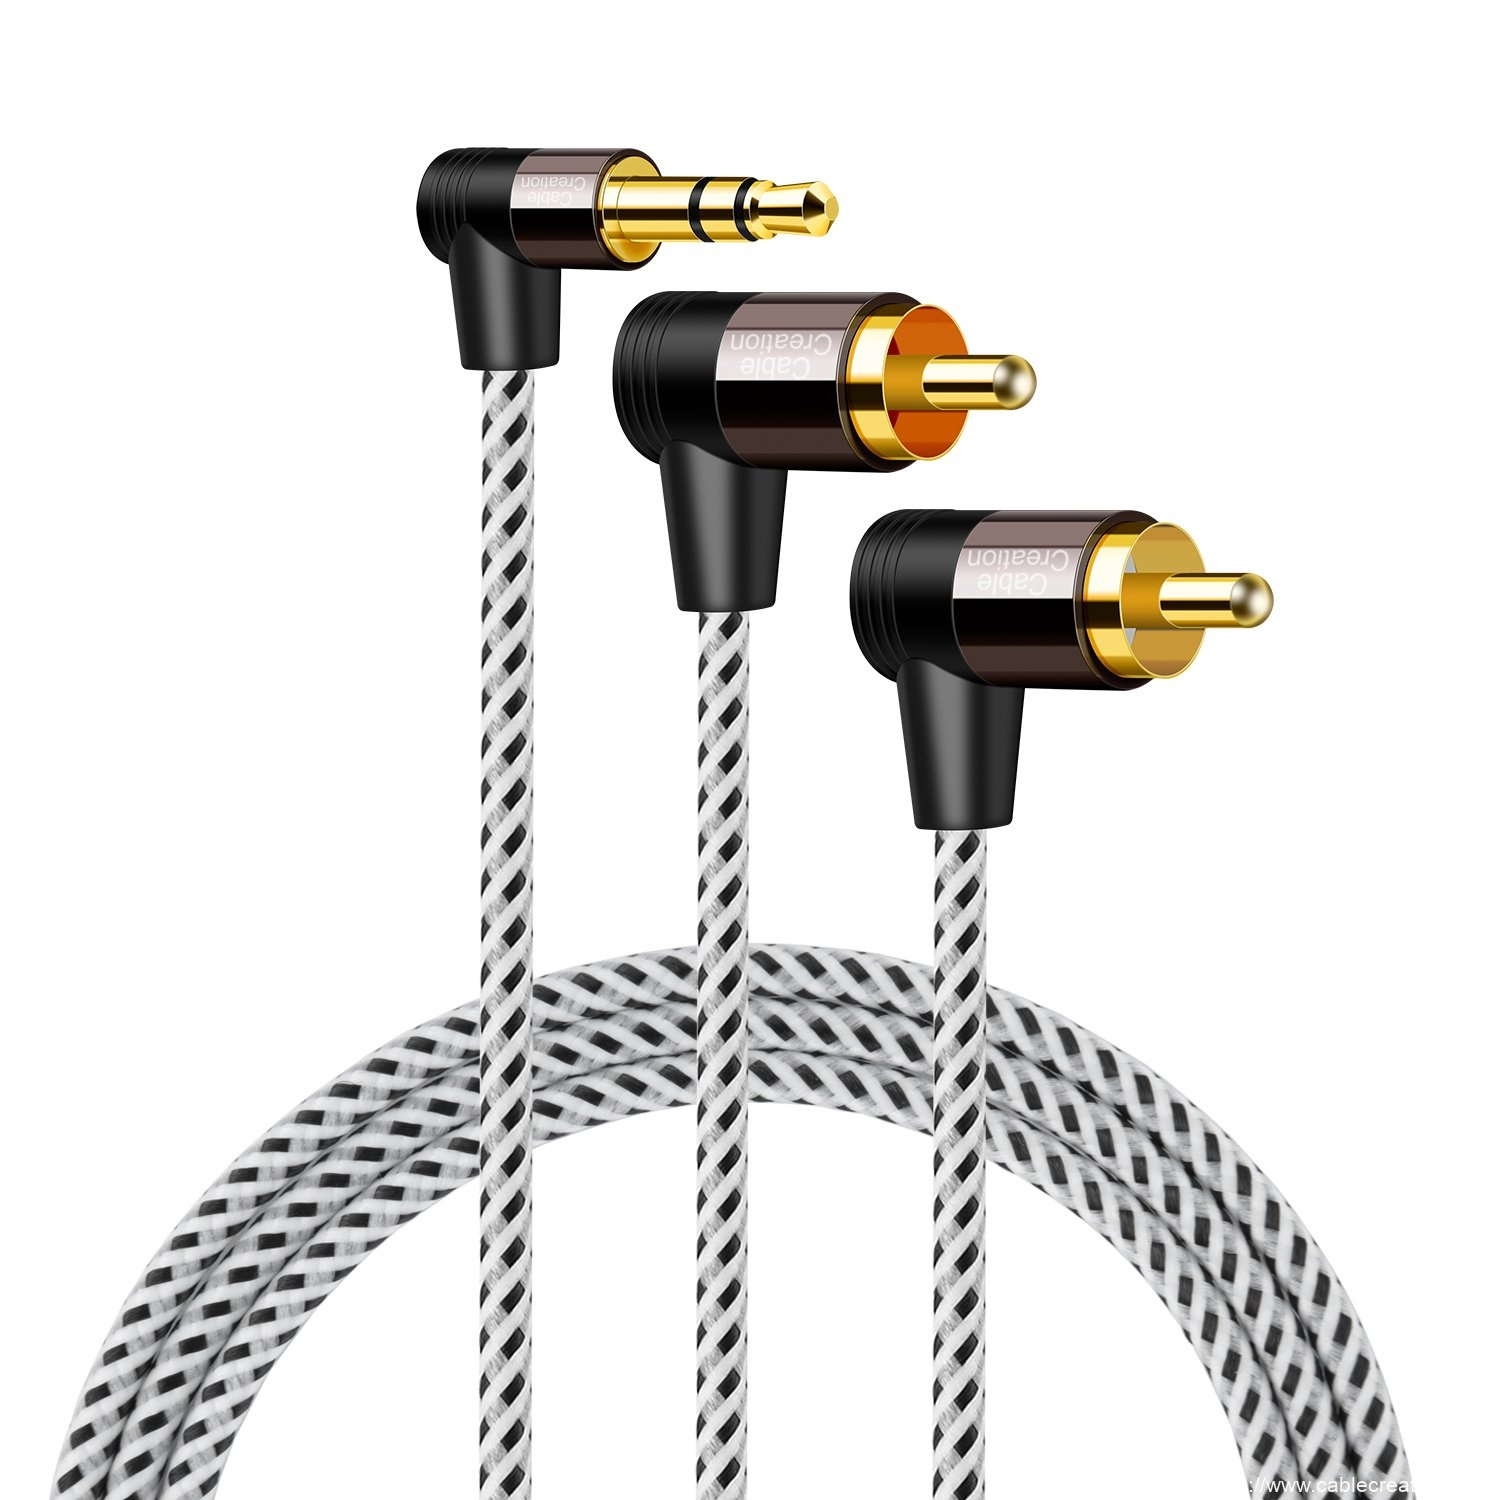 Good Wholesale Vendors Xlr Mic Cord - 3.5mm to RCA 16 Feet/4.8 Meters, #CC0779 – CableCreation